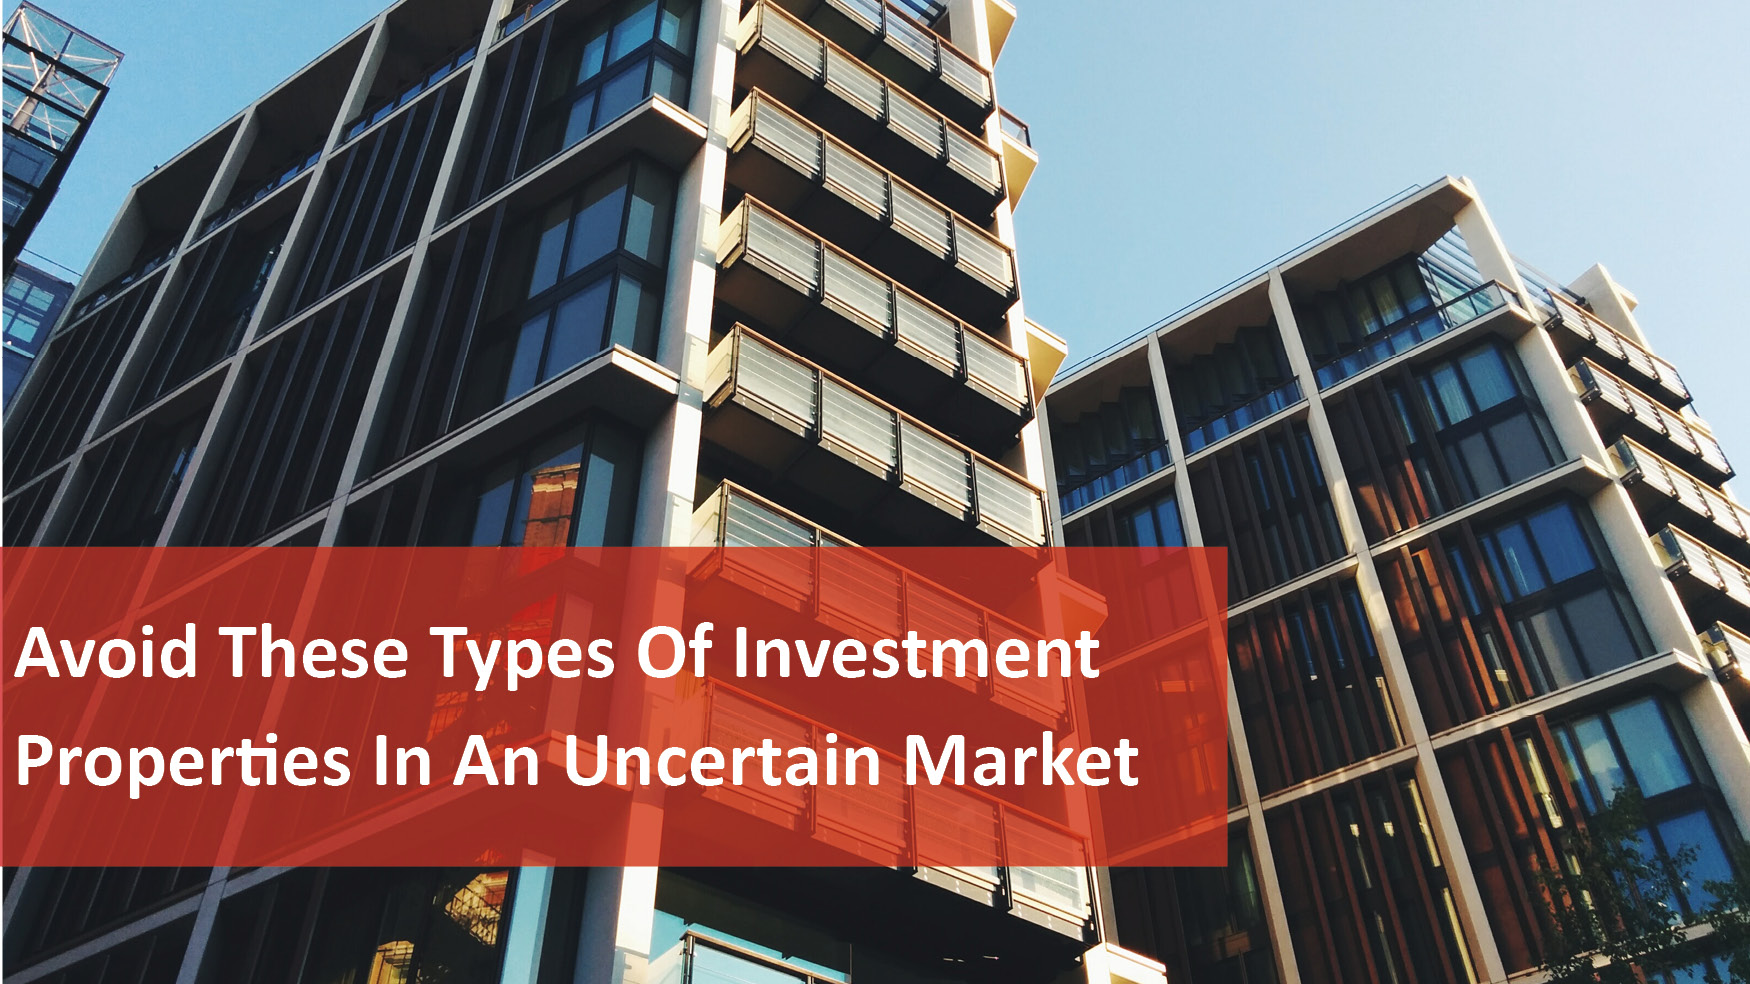 We Love Rentals Avoid These Types Of Investment Properties In An Uncertain Market